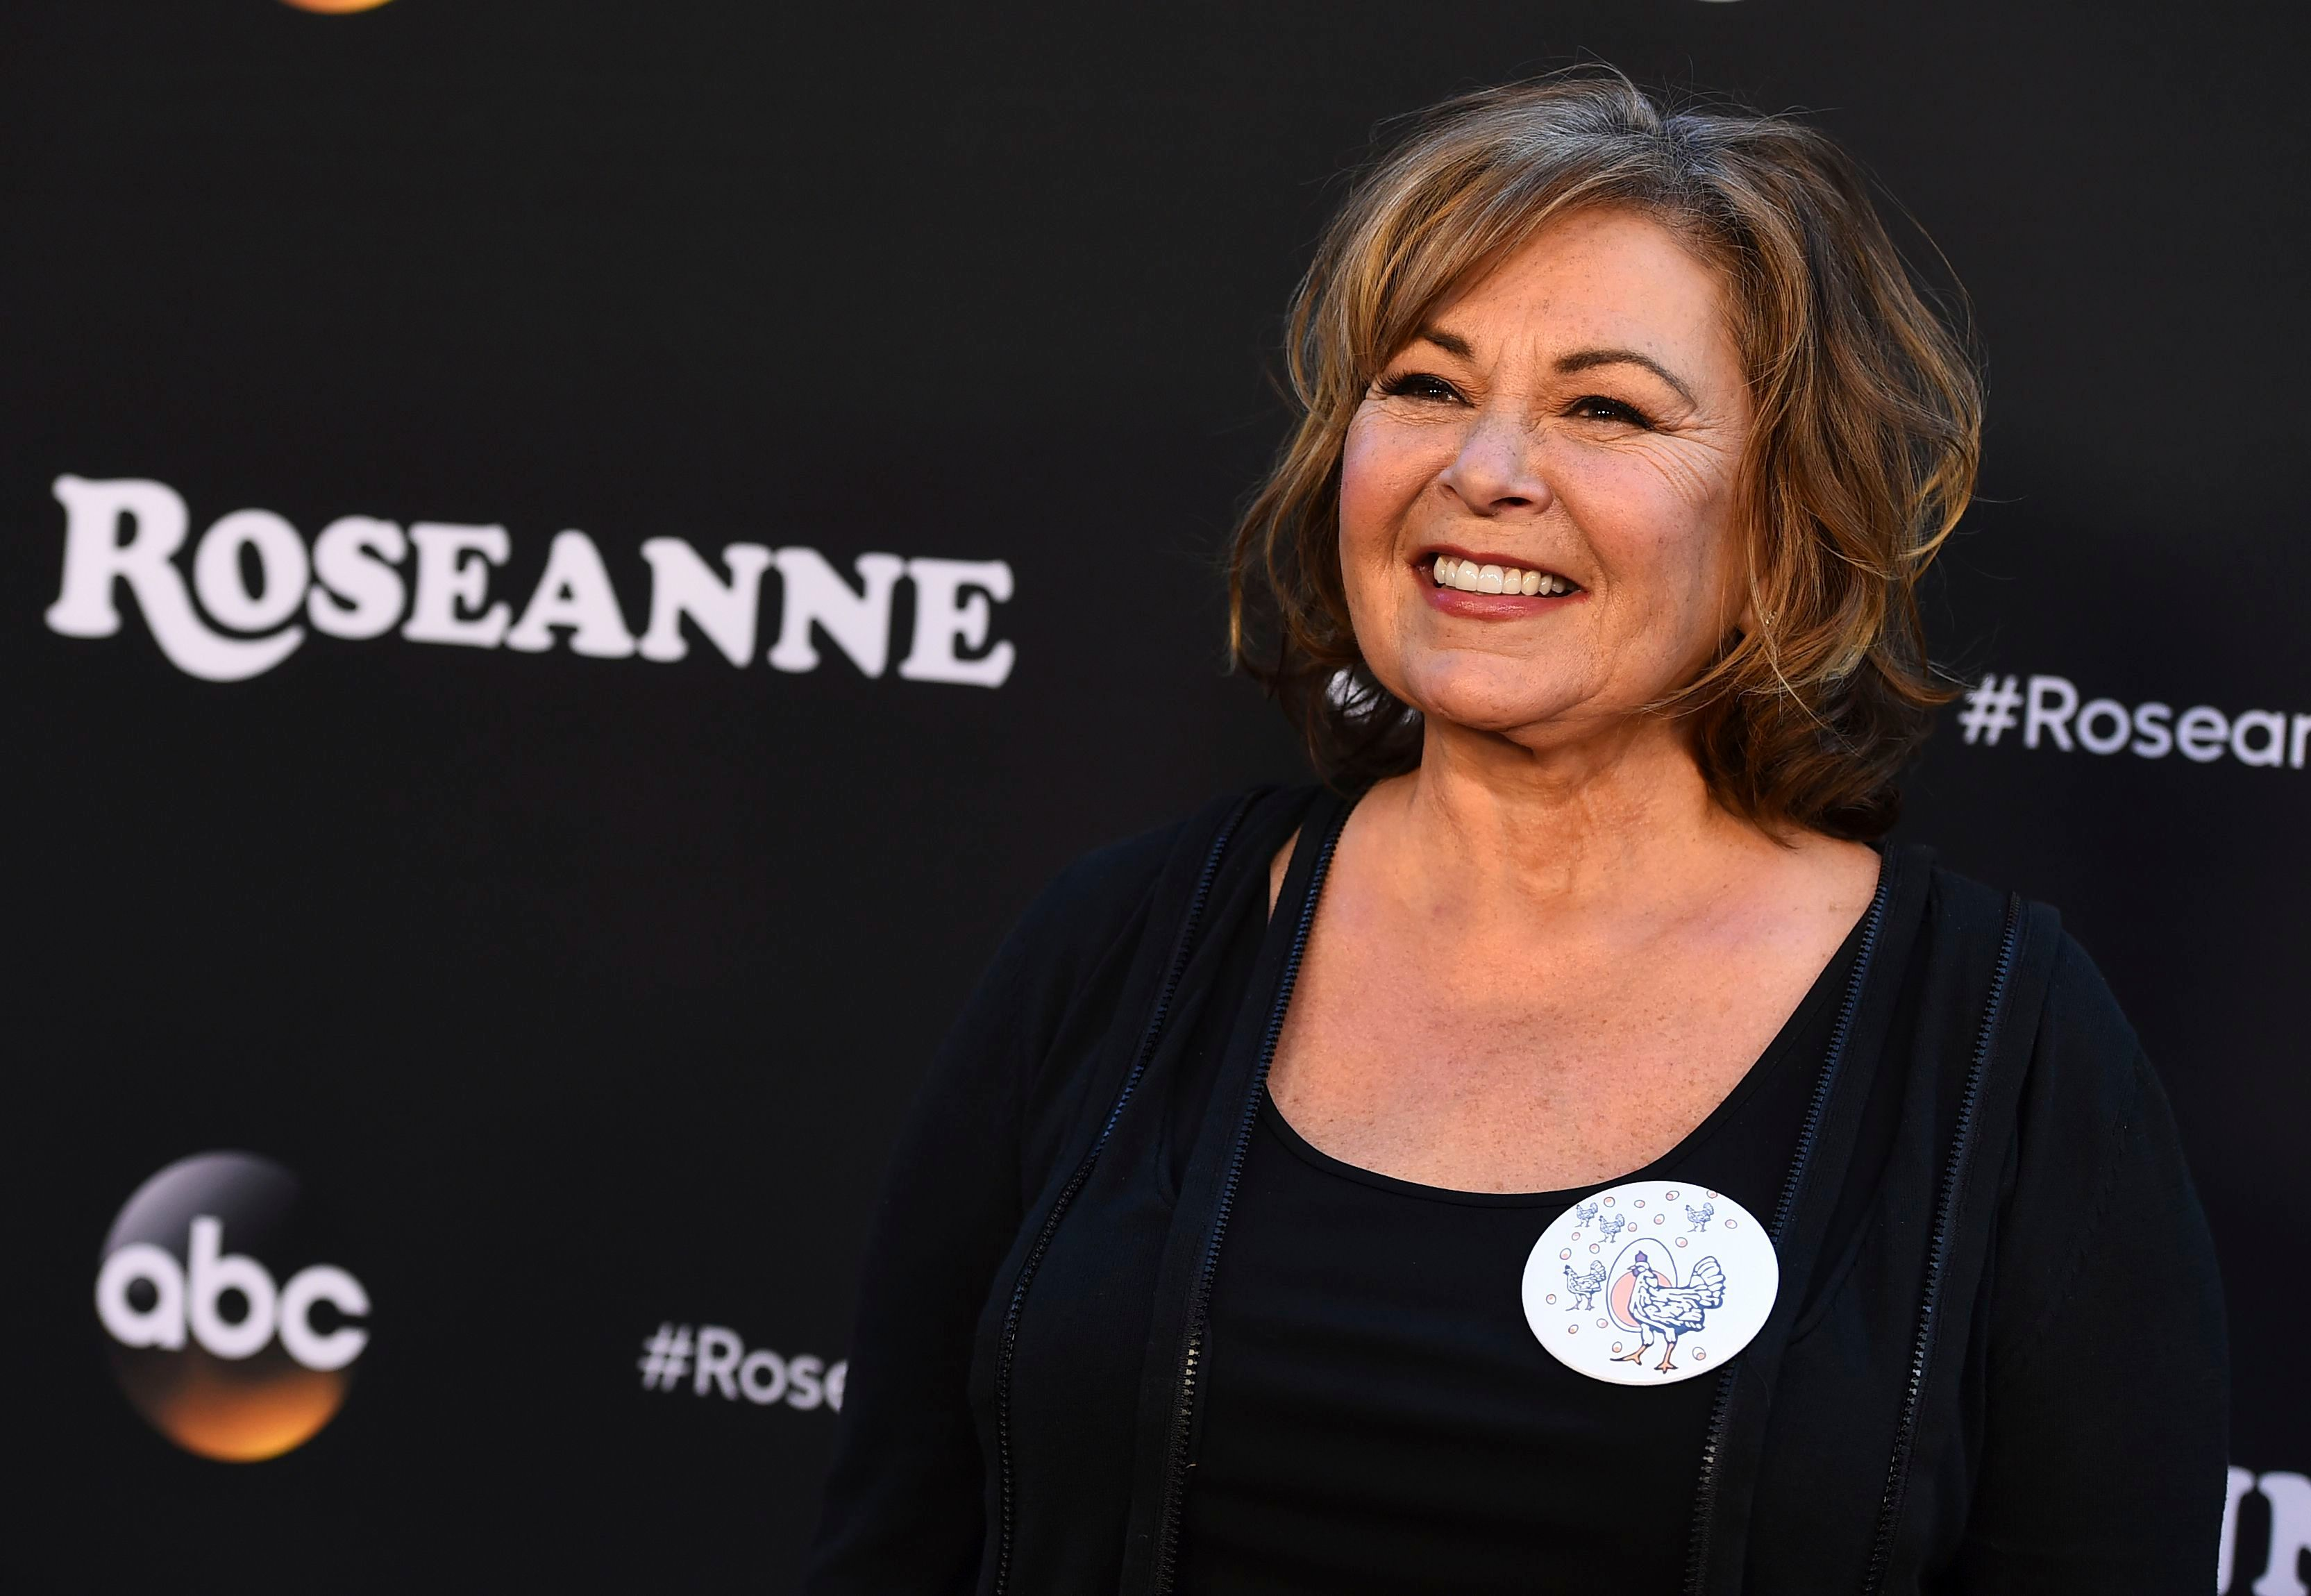 Roseanne Barr Says She Has 'So Many' Offers to Return to TV